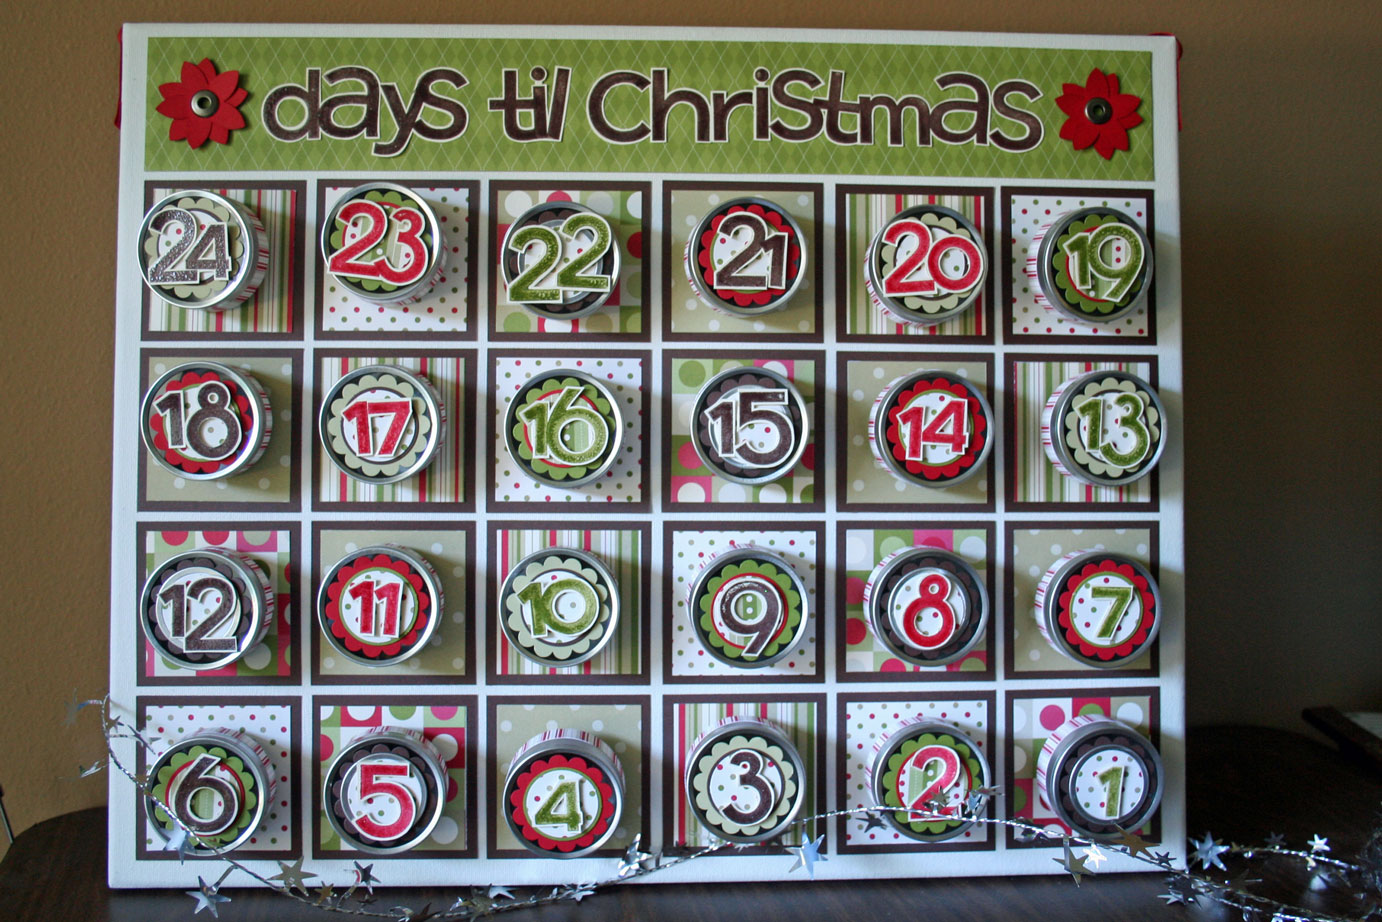 Behind The Thrills Eriks Advent Calendar 24 Days Til Christmas